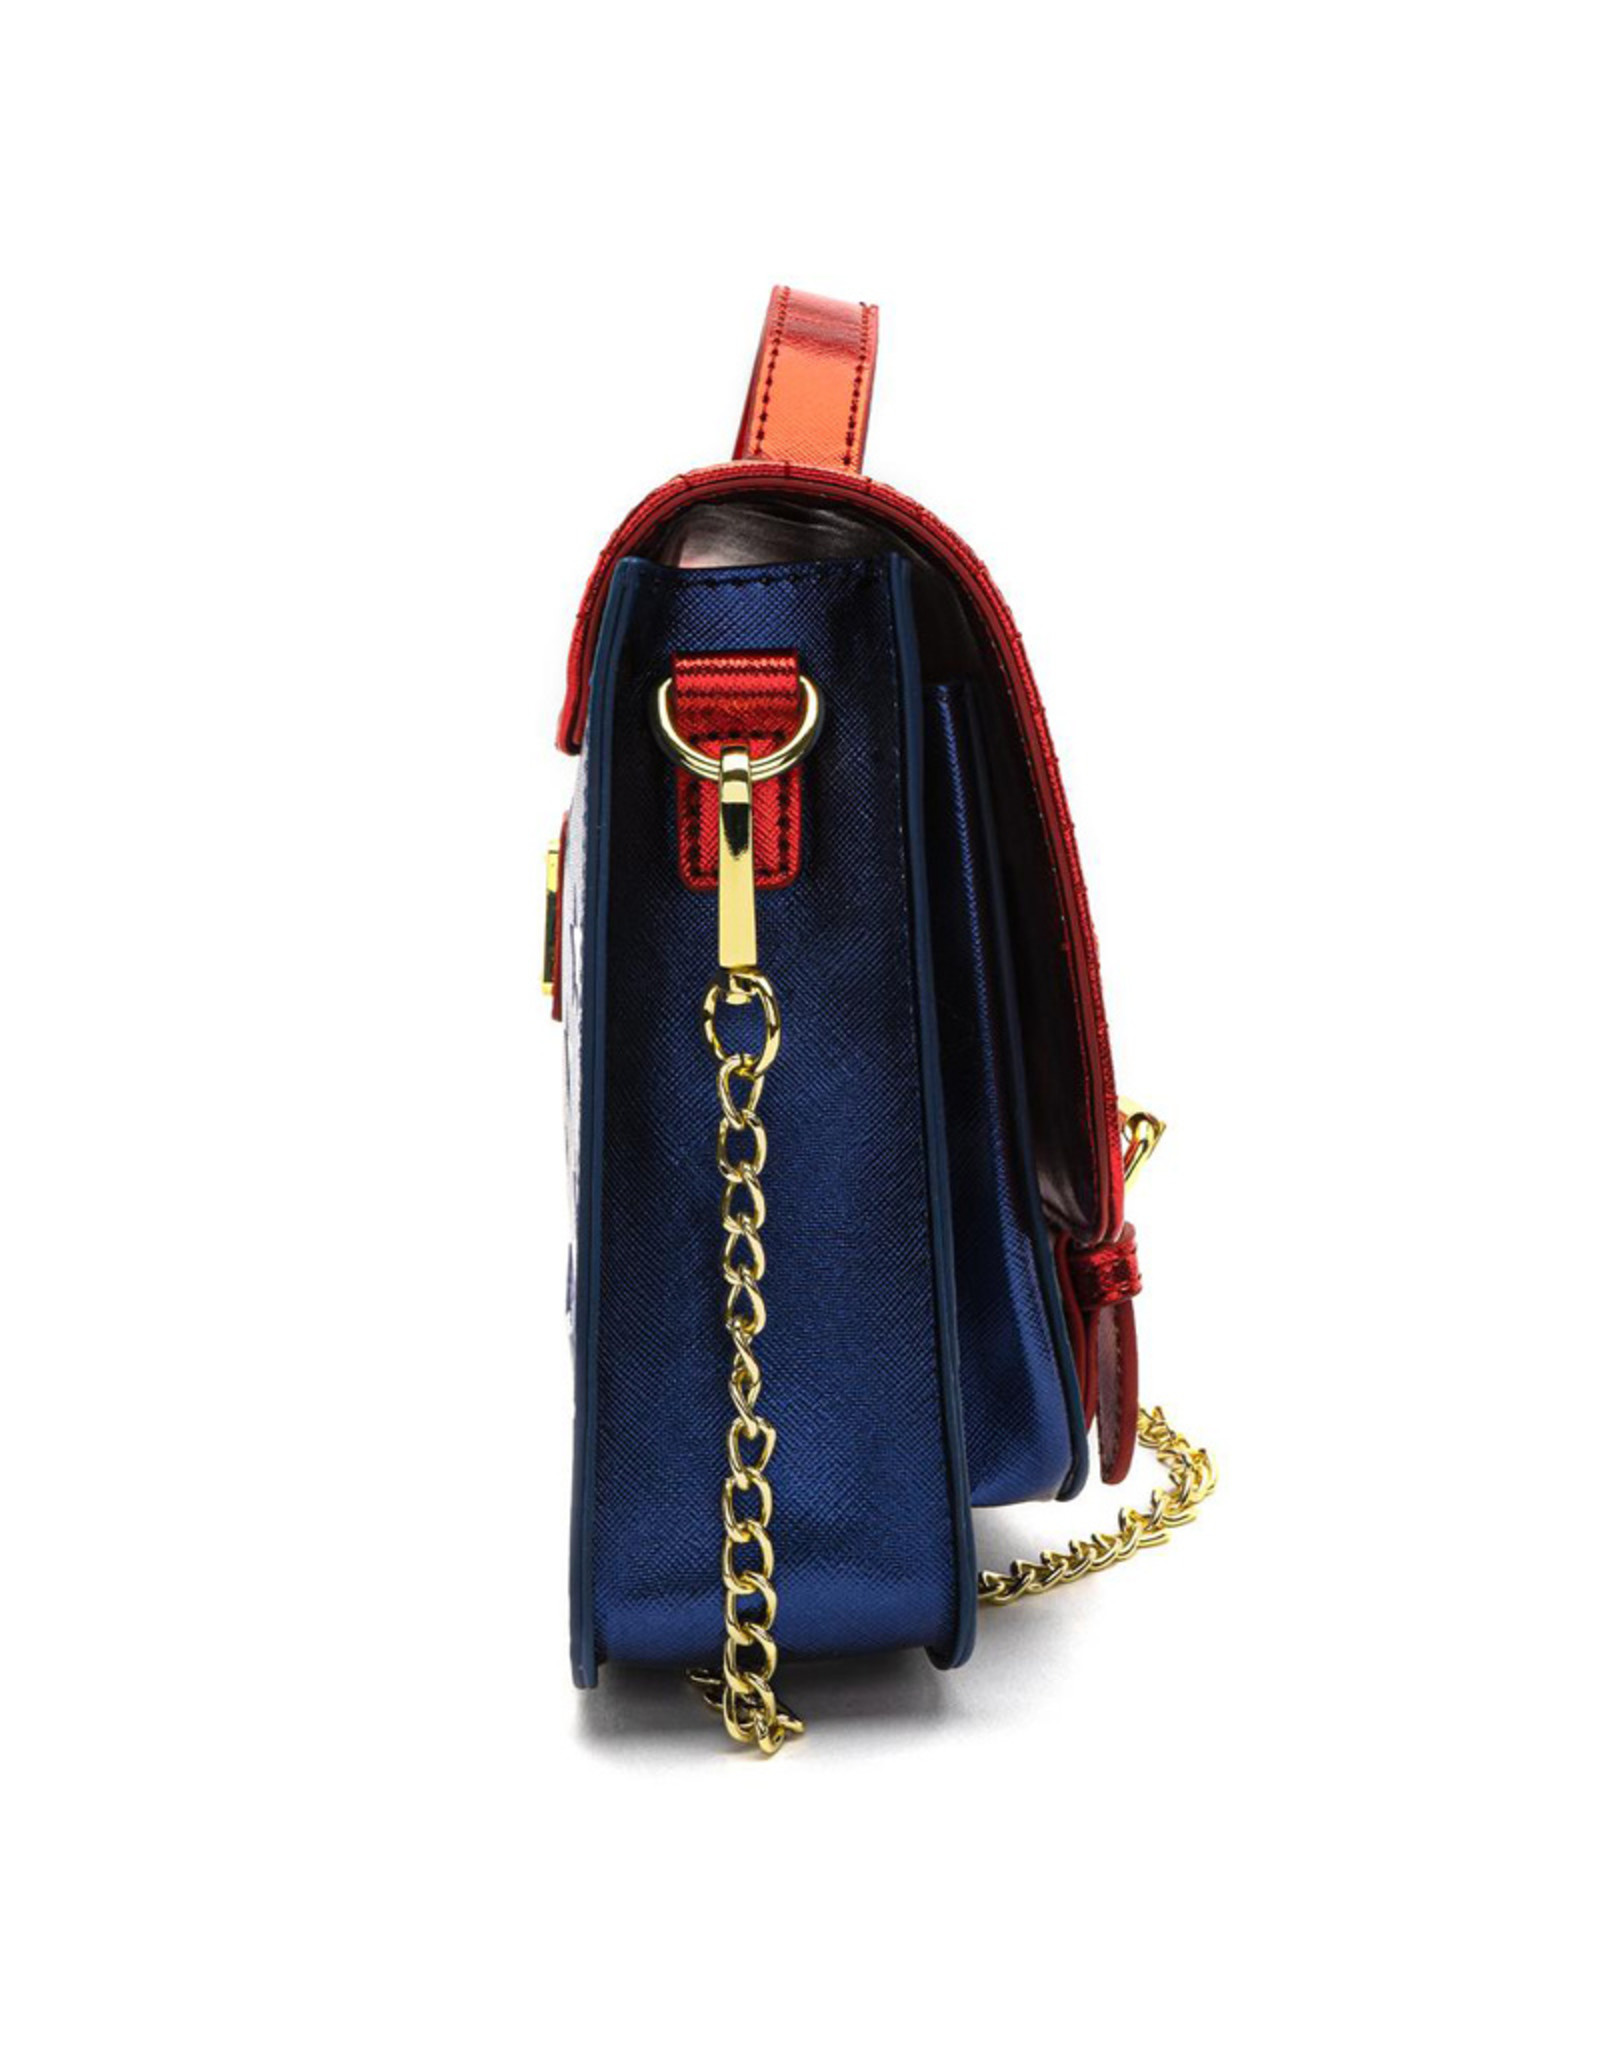 Dc comics Dc Comics ( Loungefly Handbag ) Wonder Woman